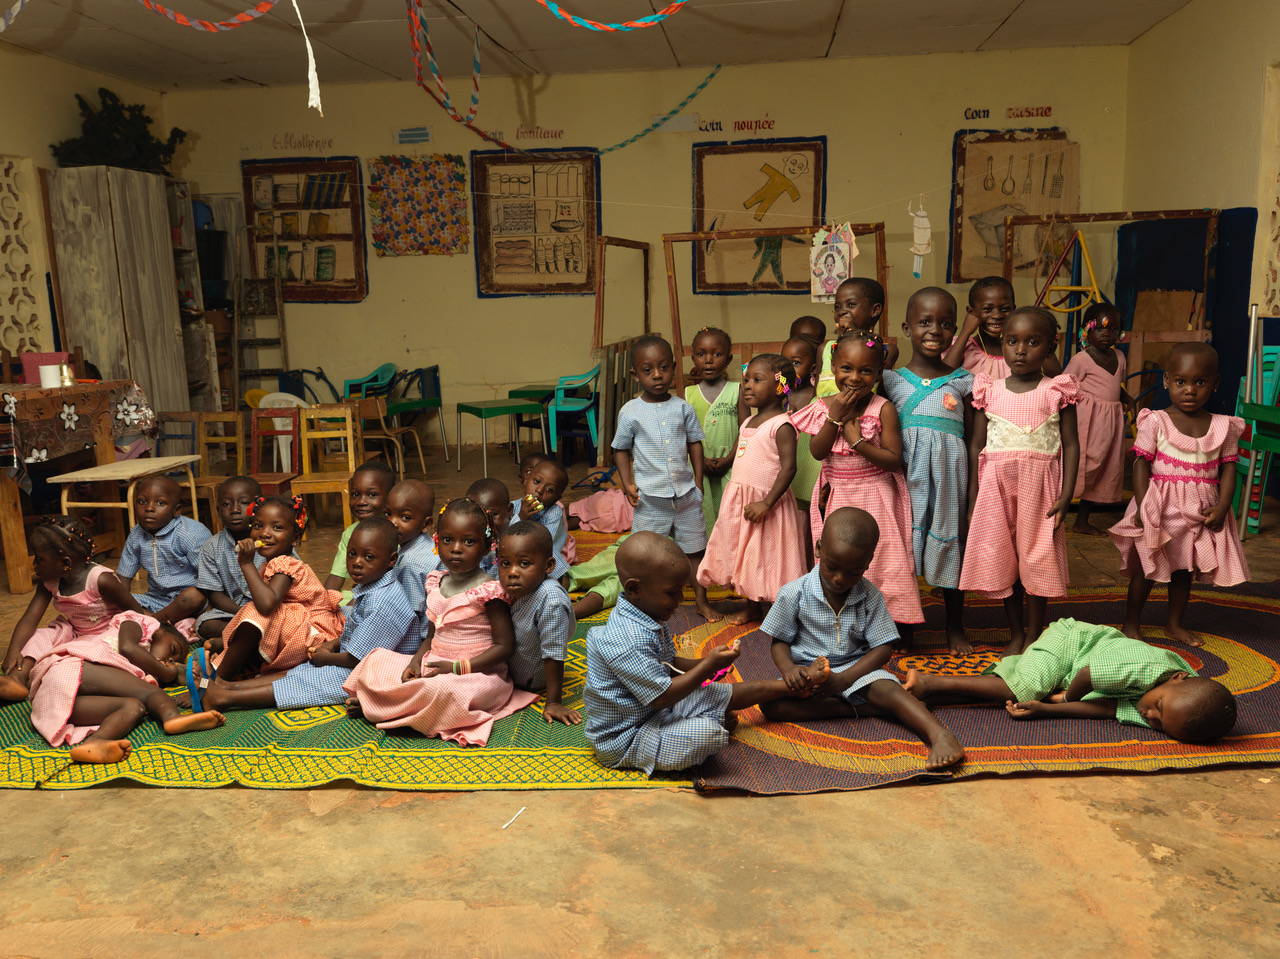 Les Piazons nursery school, Yakassé-Attobrou, built with Fairtrade Premium. Picture: Peter Caton.